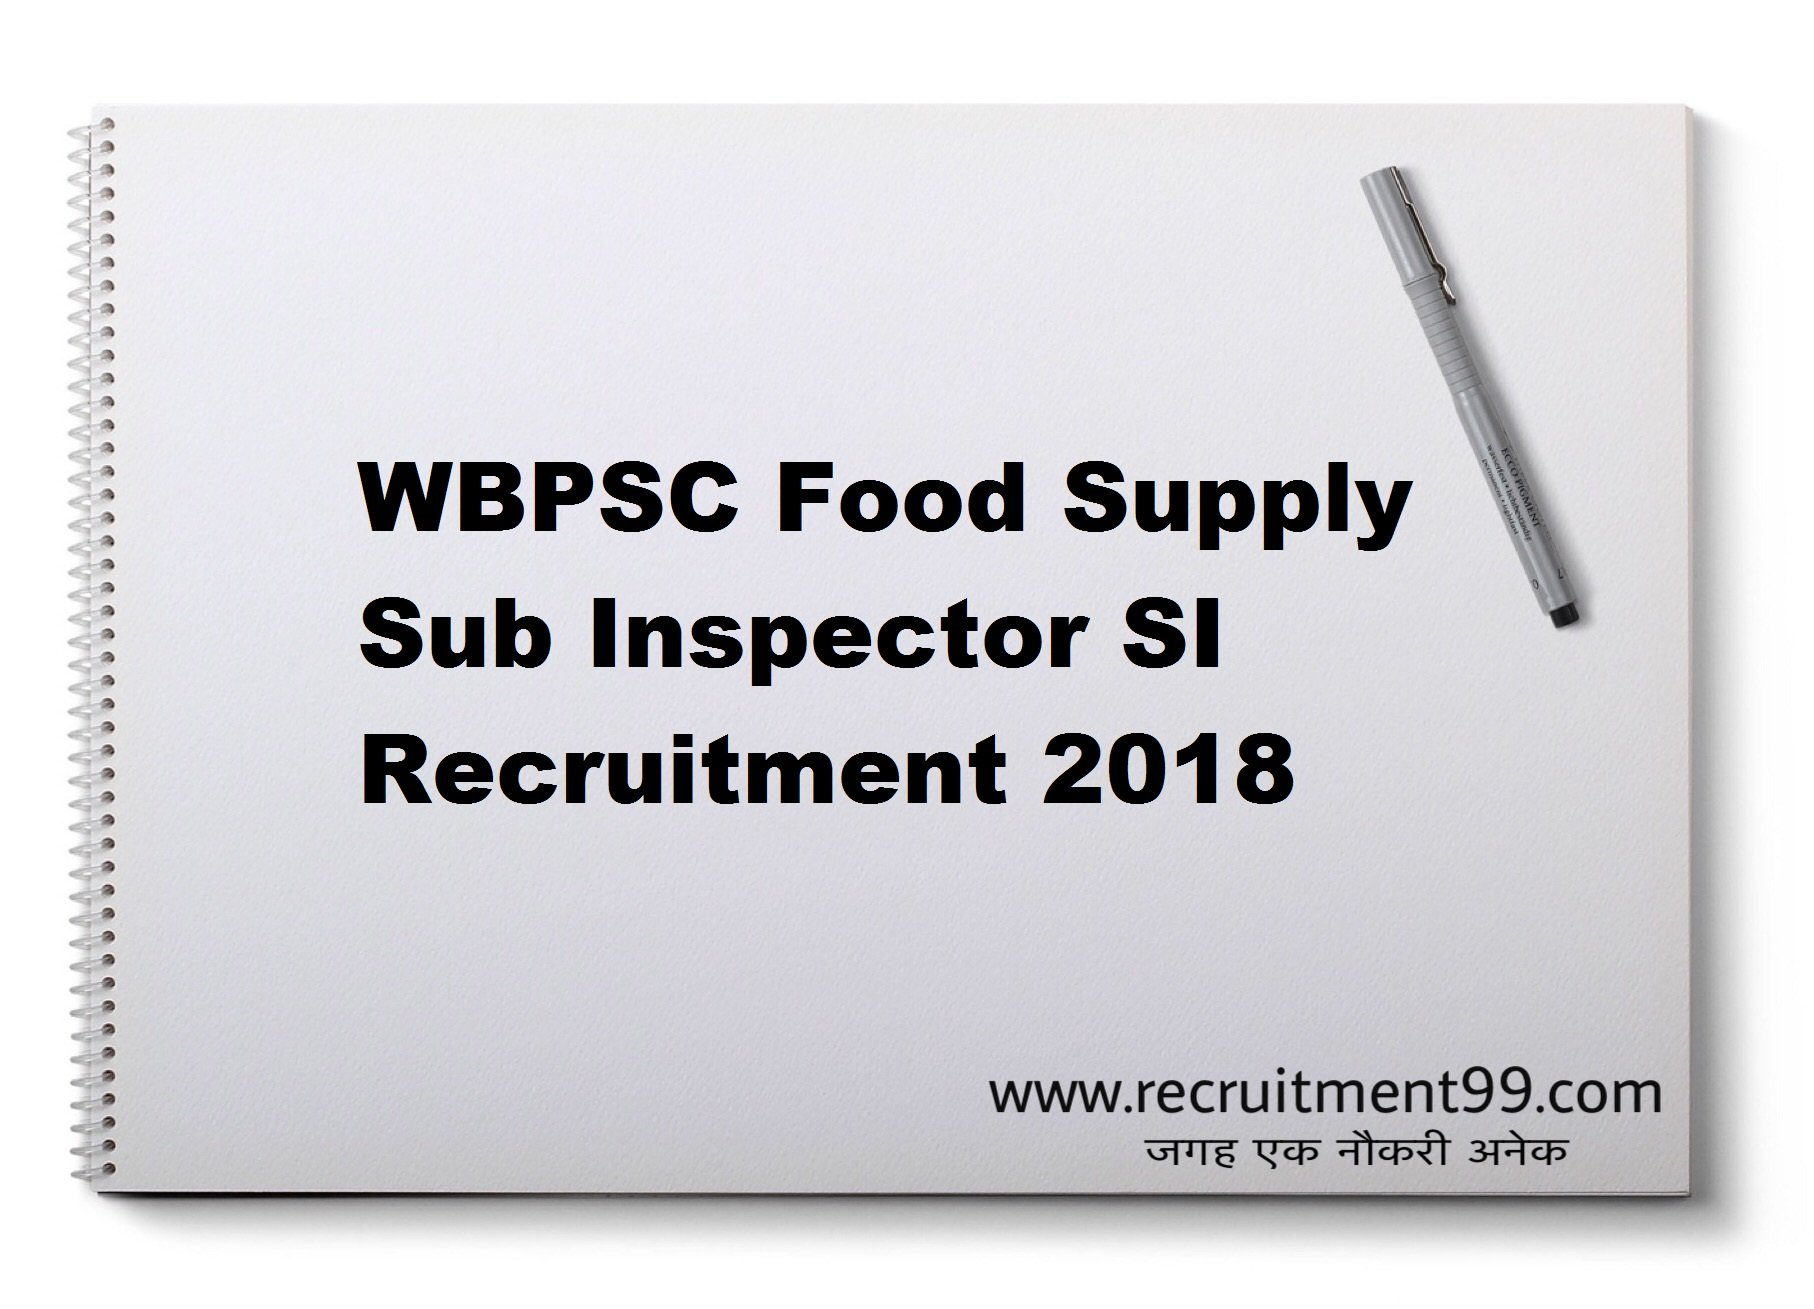 WBPSC Food Supply Sub Inspector SI Recruitment Admit Card Result 2018